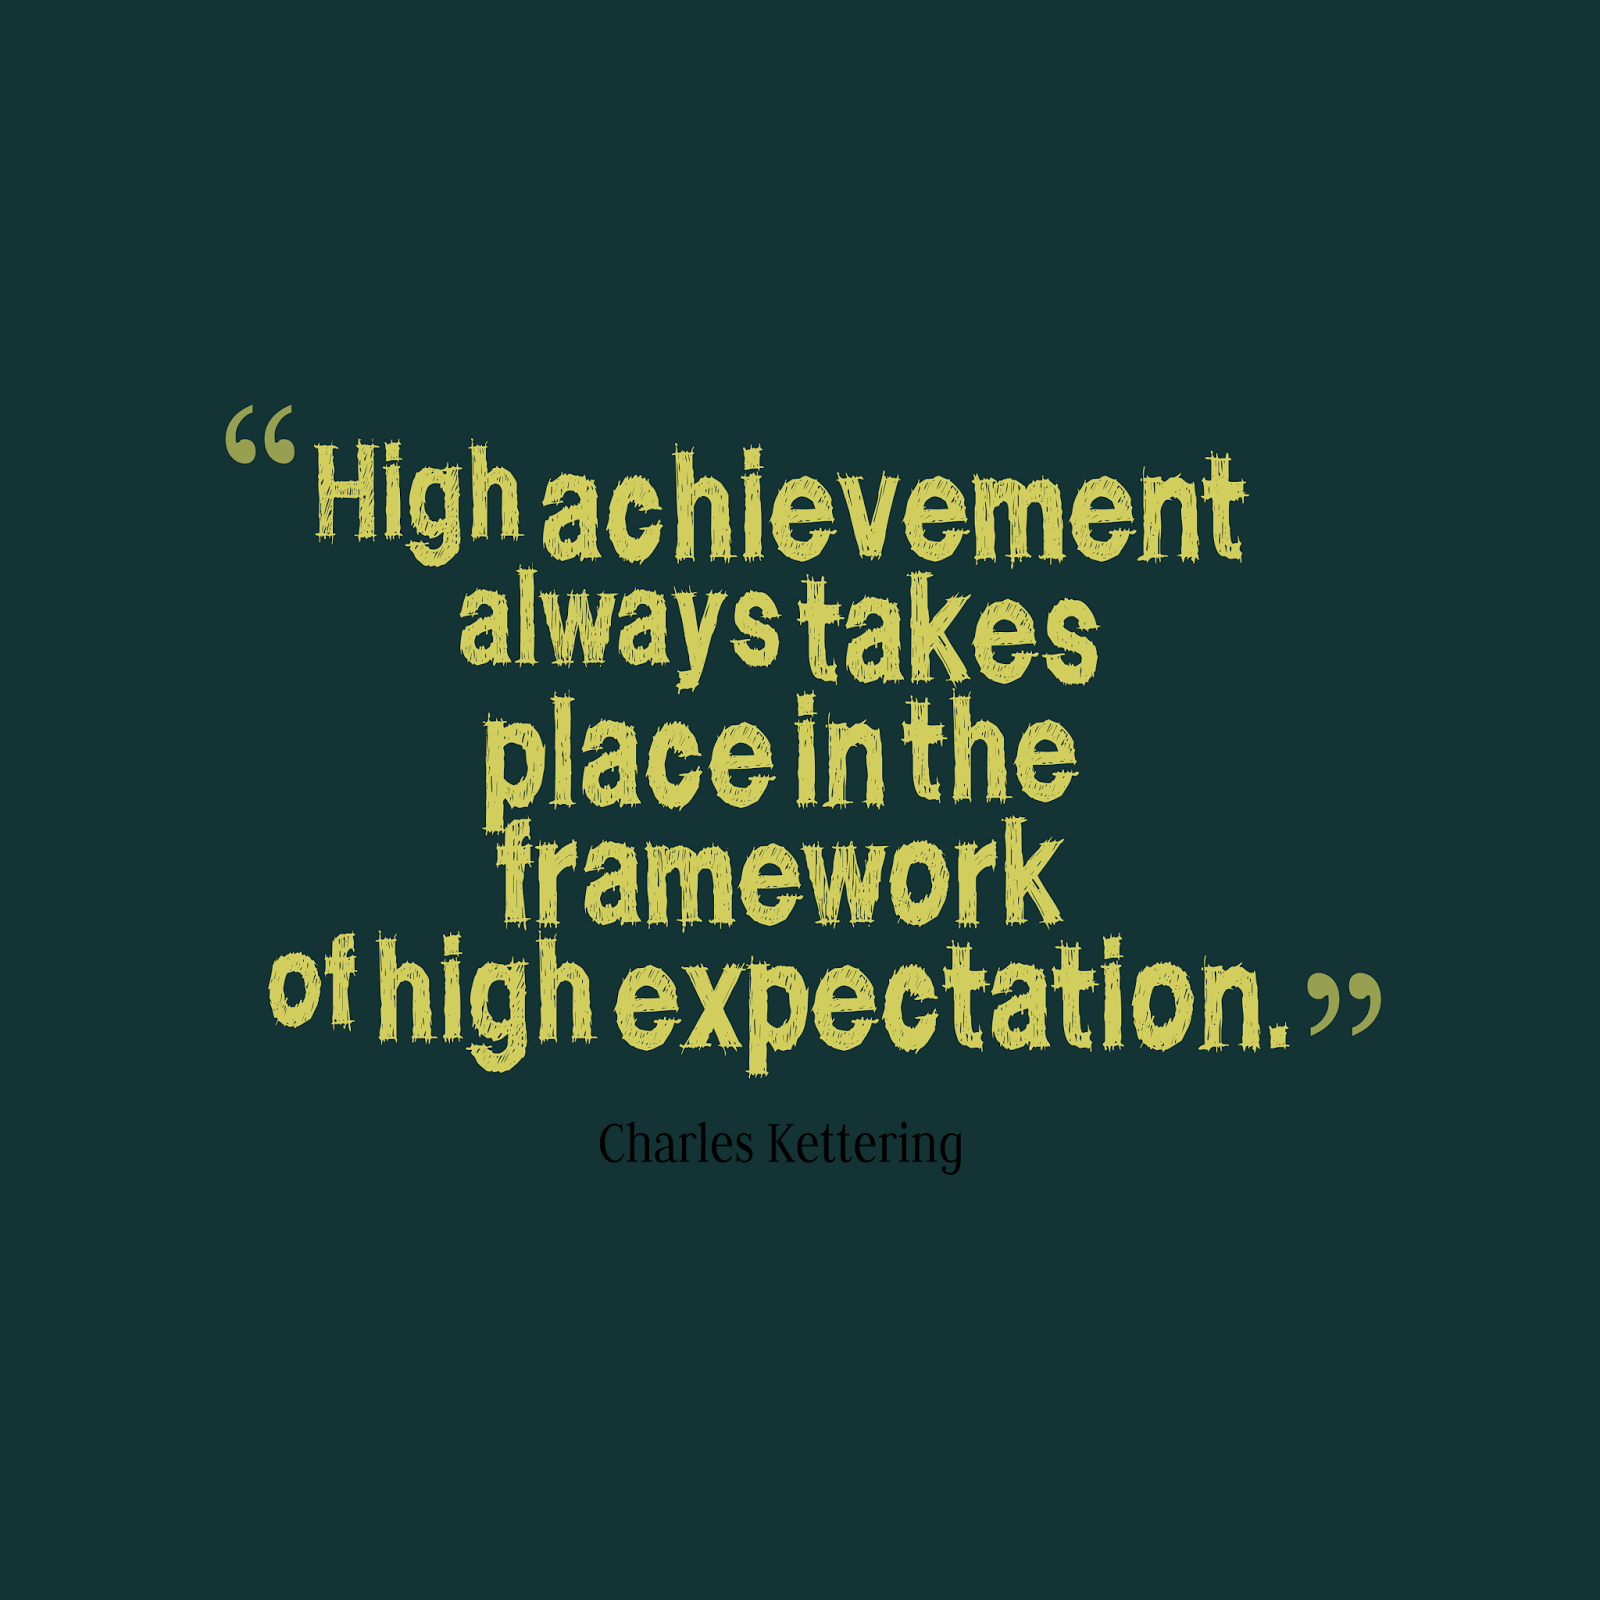 high expectations for students quotes Google Search